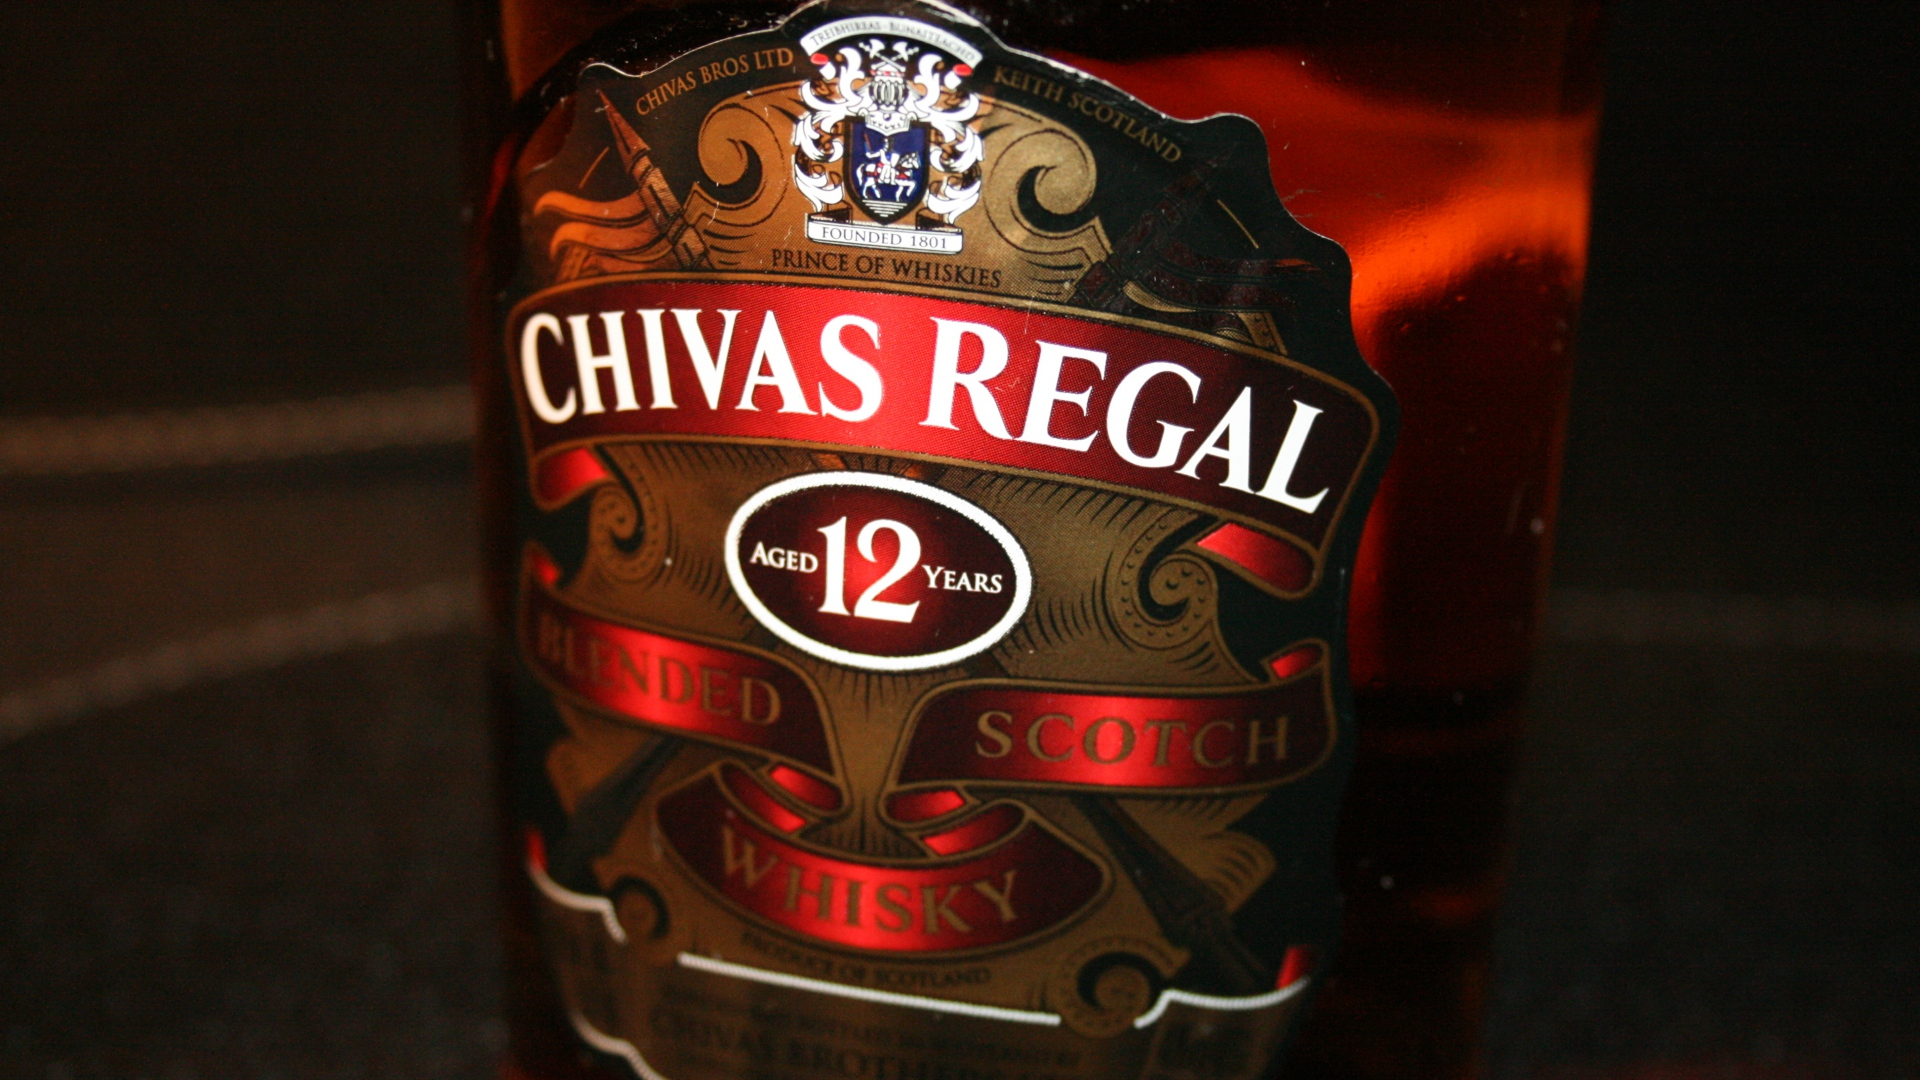 Download wallpaper 1920x1080 chivas regal whiskey alcohol full hd chivas regal whiskey alcohol voltagebd Images